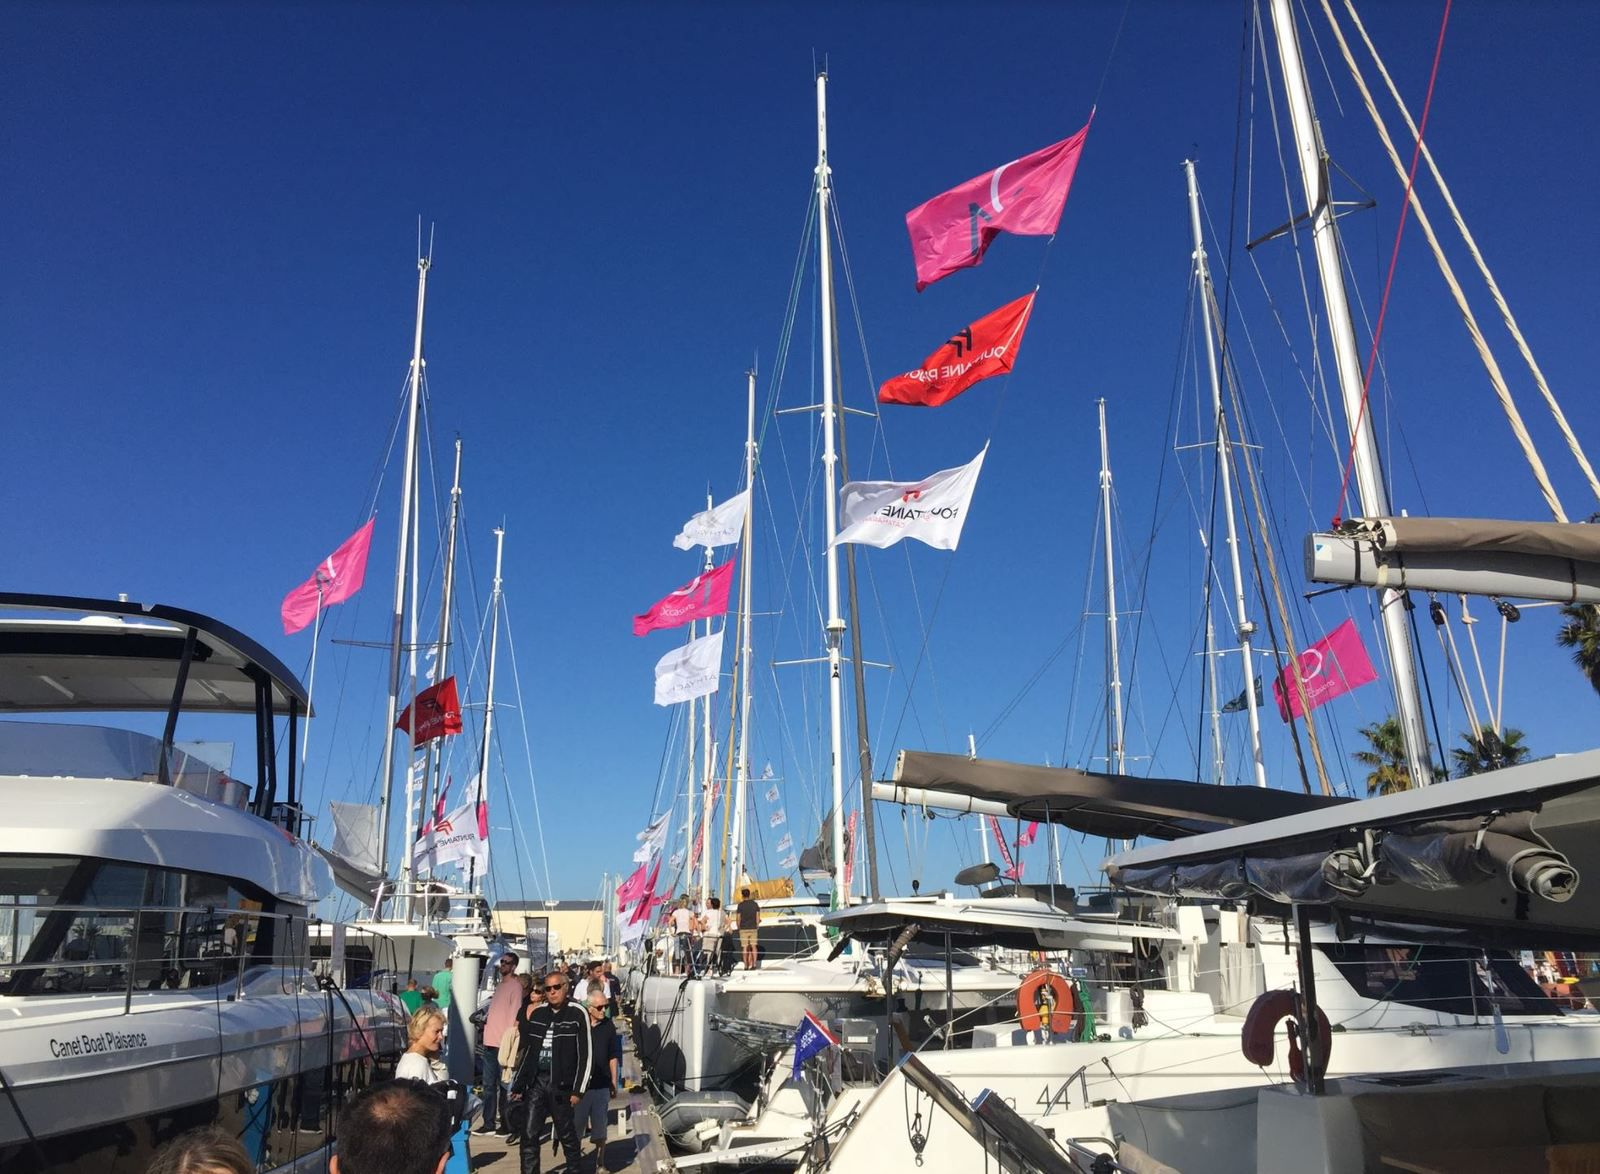 Les Occasions du Multicoque Boat Show, from October 15 to 18, in Canet en Roussillon (France)